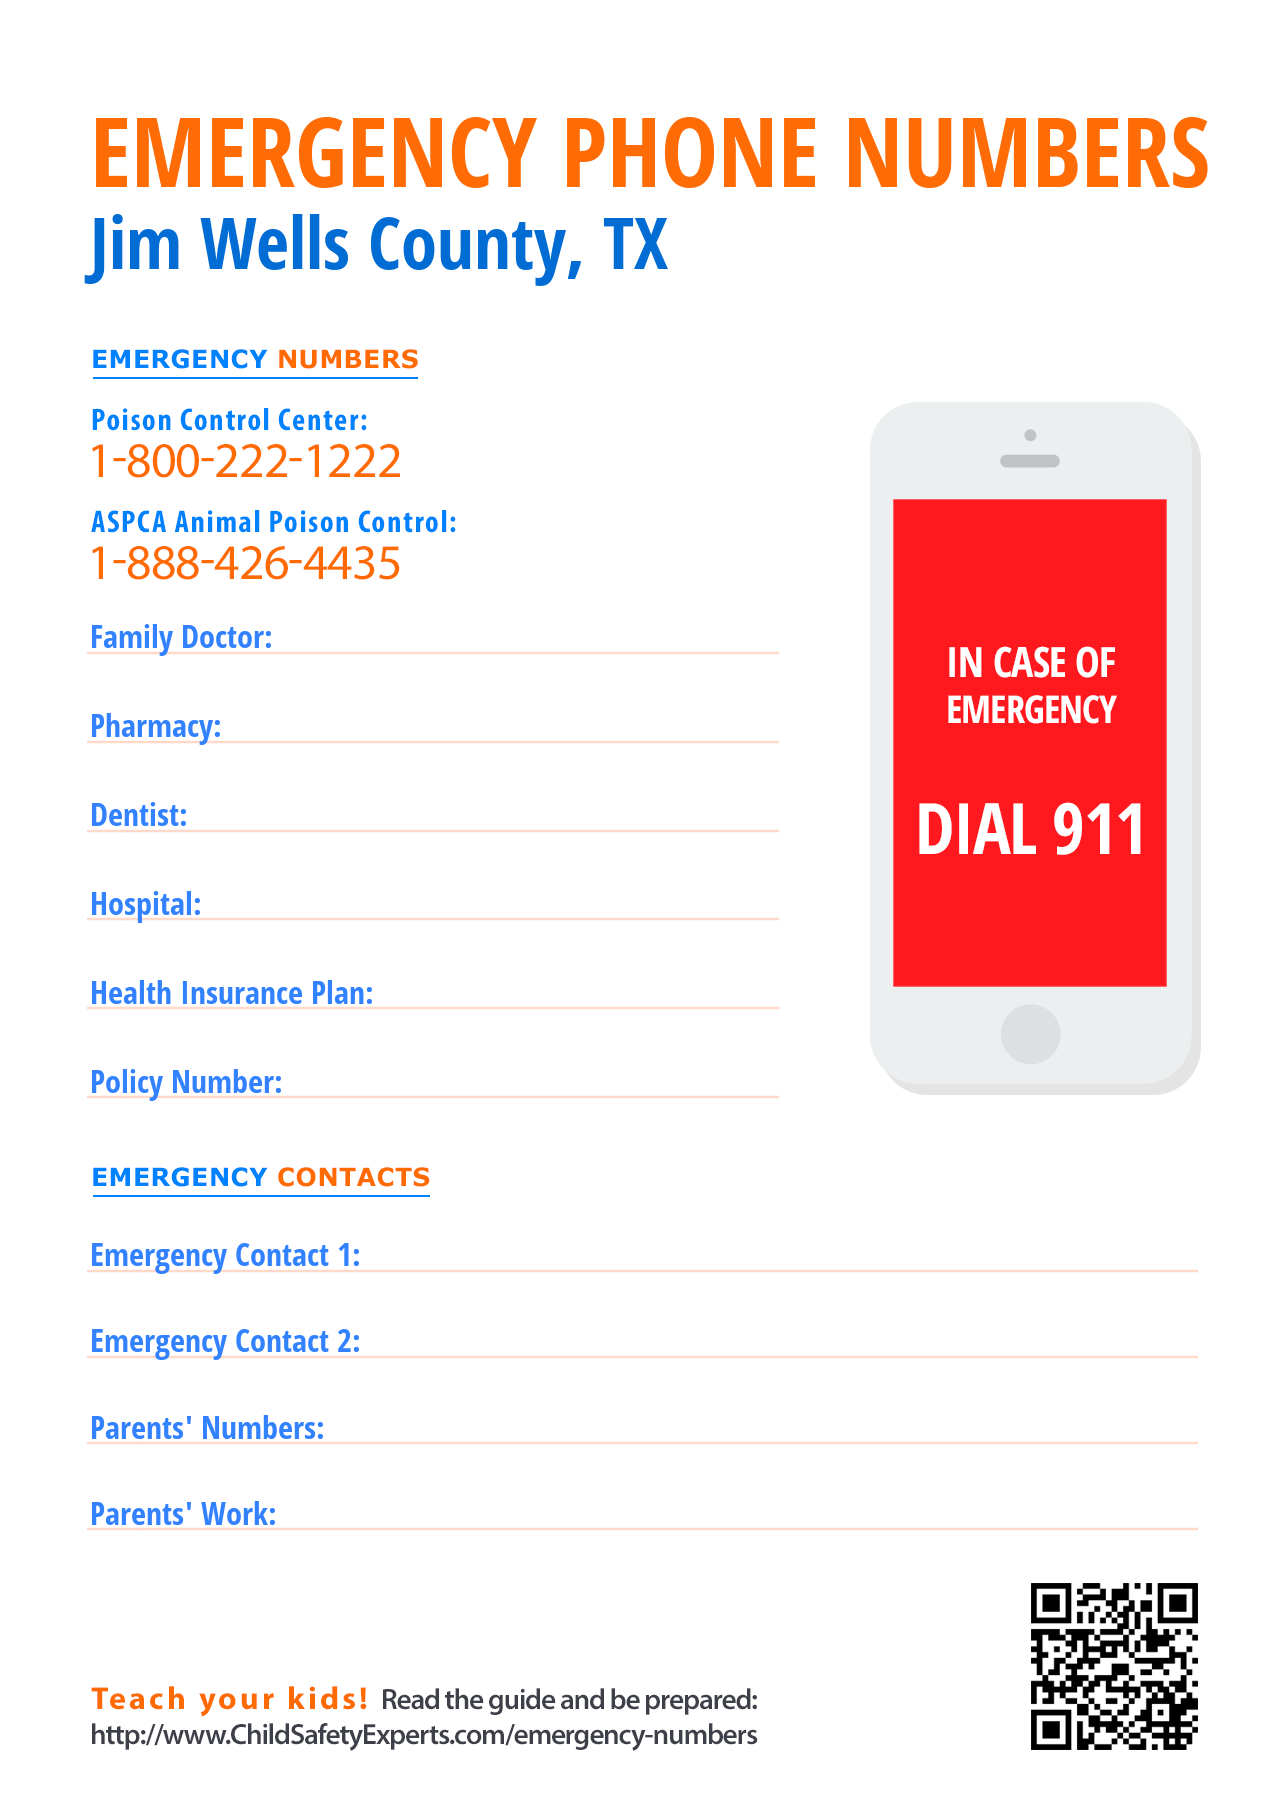 Important emergency phone numbers in Jim Wells County, Texas